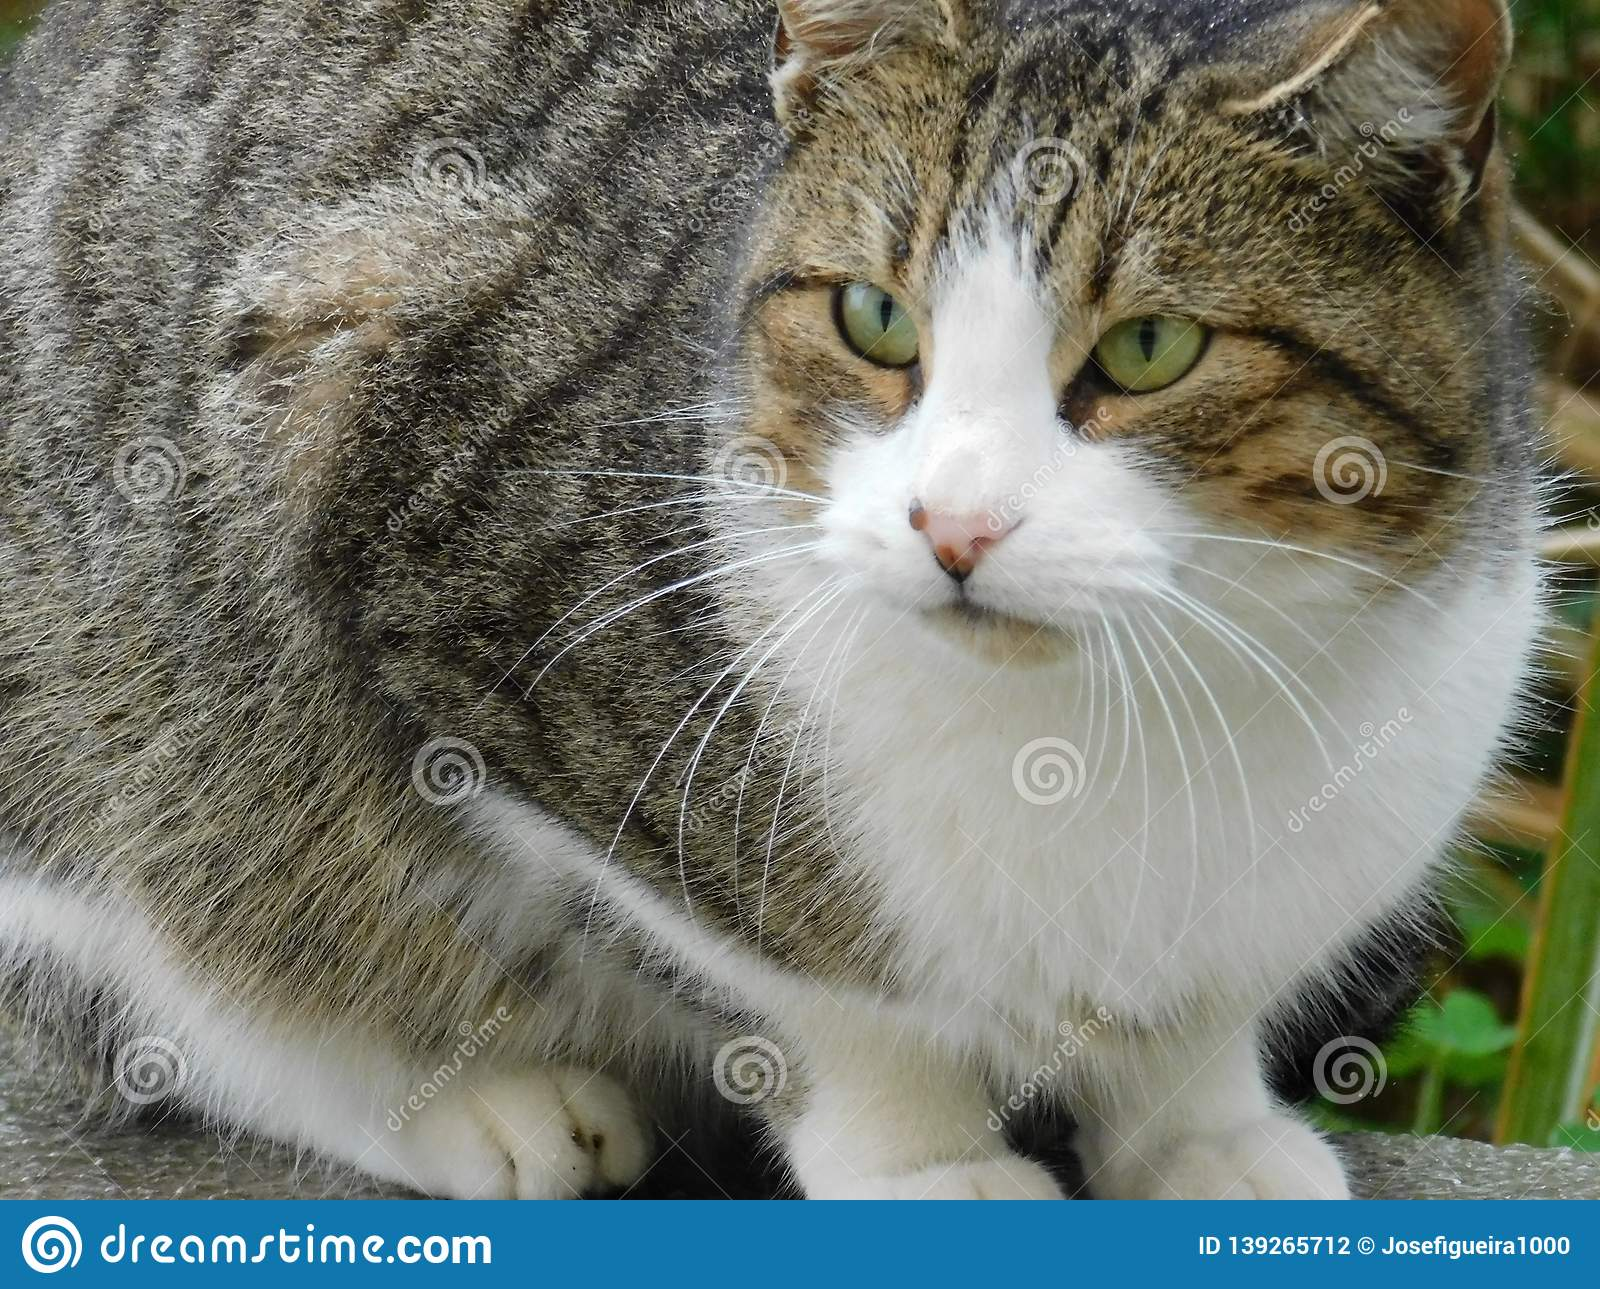 Green eyes cats stock photo. Image of decoration, cats